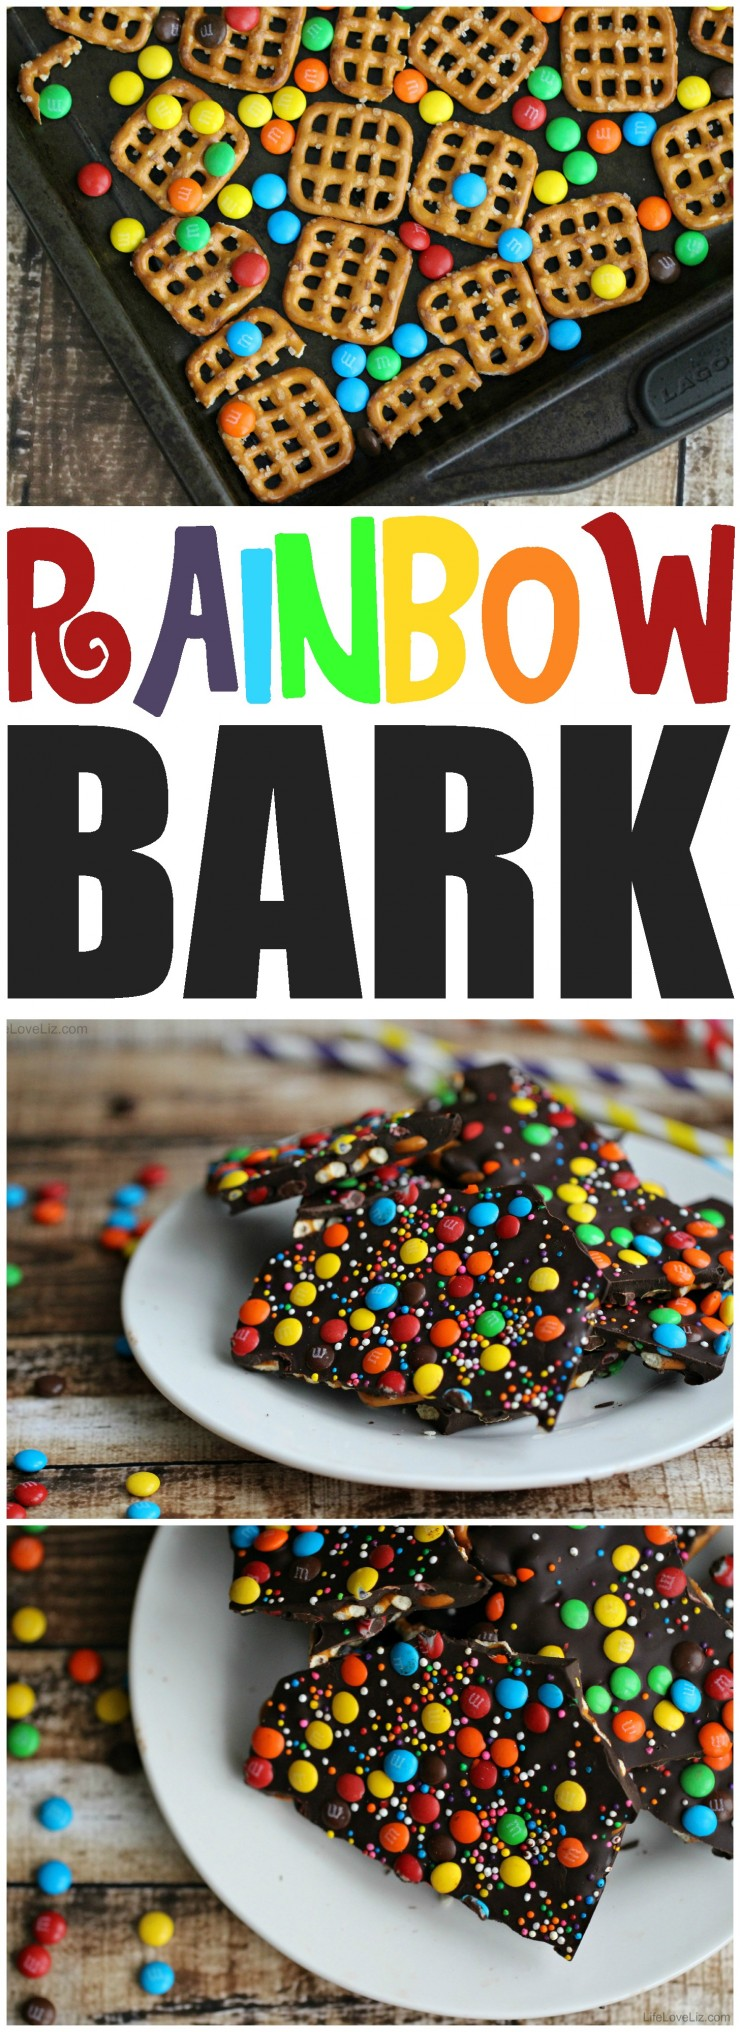 Rainbow Bark with Pretzels is a fun and tasty St. Patrick's Day dessert. It's sweet and salty in just the right way!